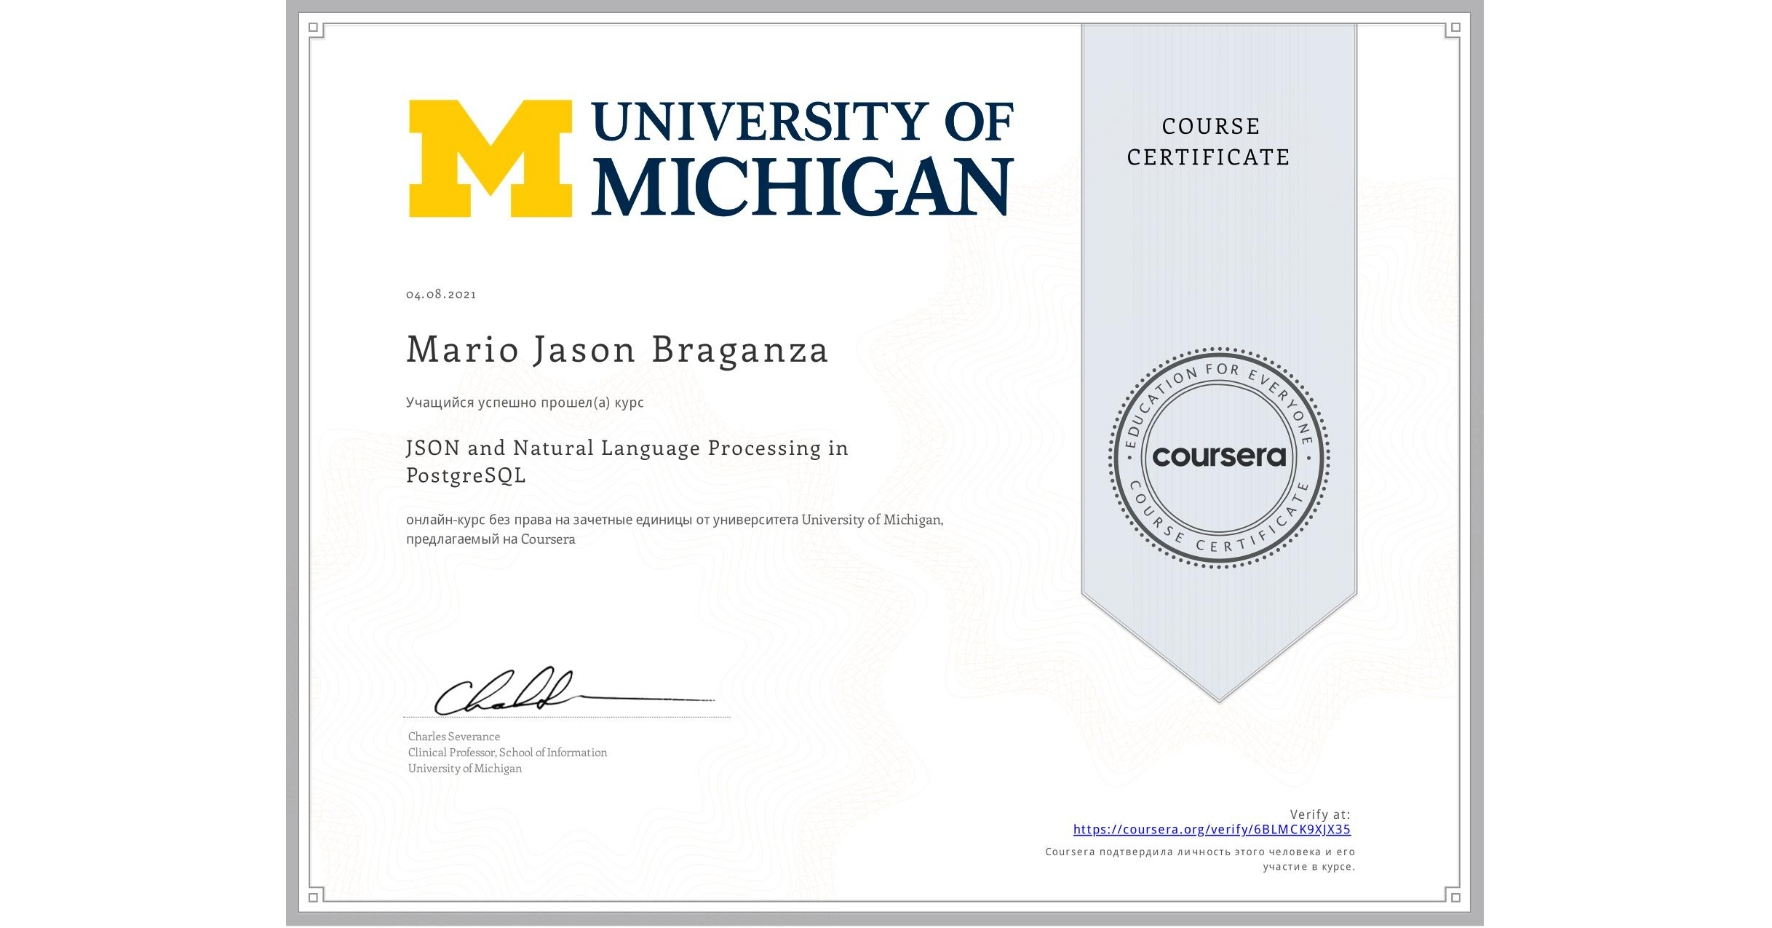 View certificate for Mario Jason Braganza, JSON and Natural Language Processing in PostgreSQL, an online non-credit course authorized by University of Michigan and offered through Coursera